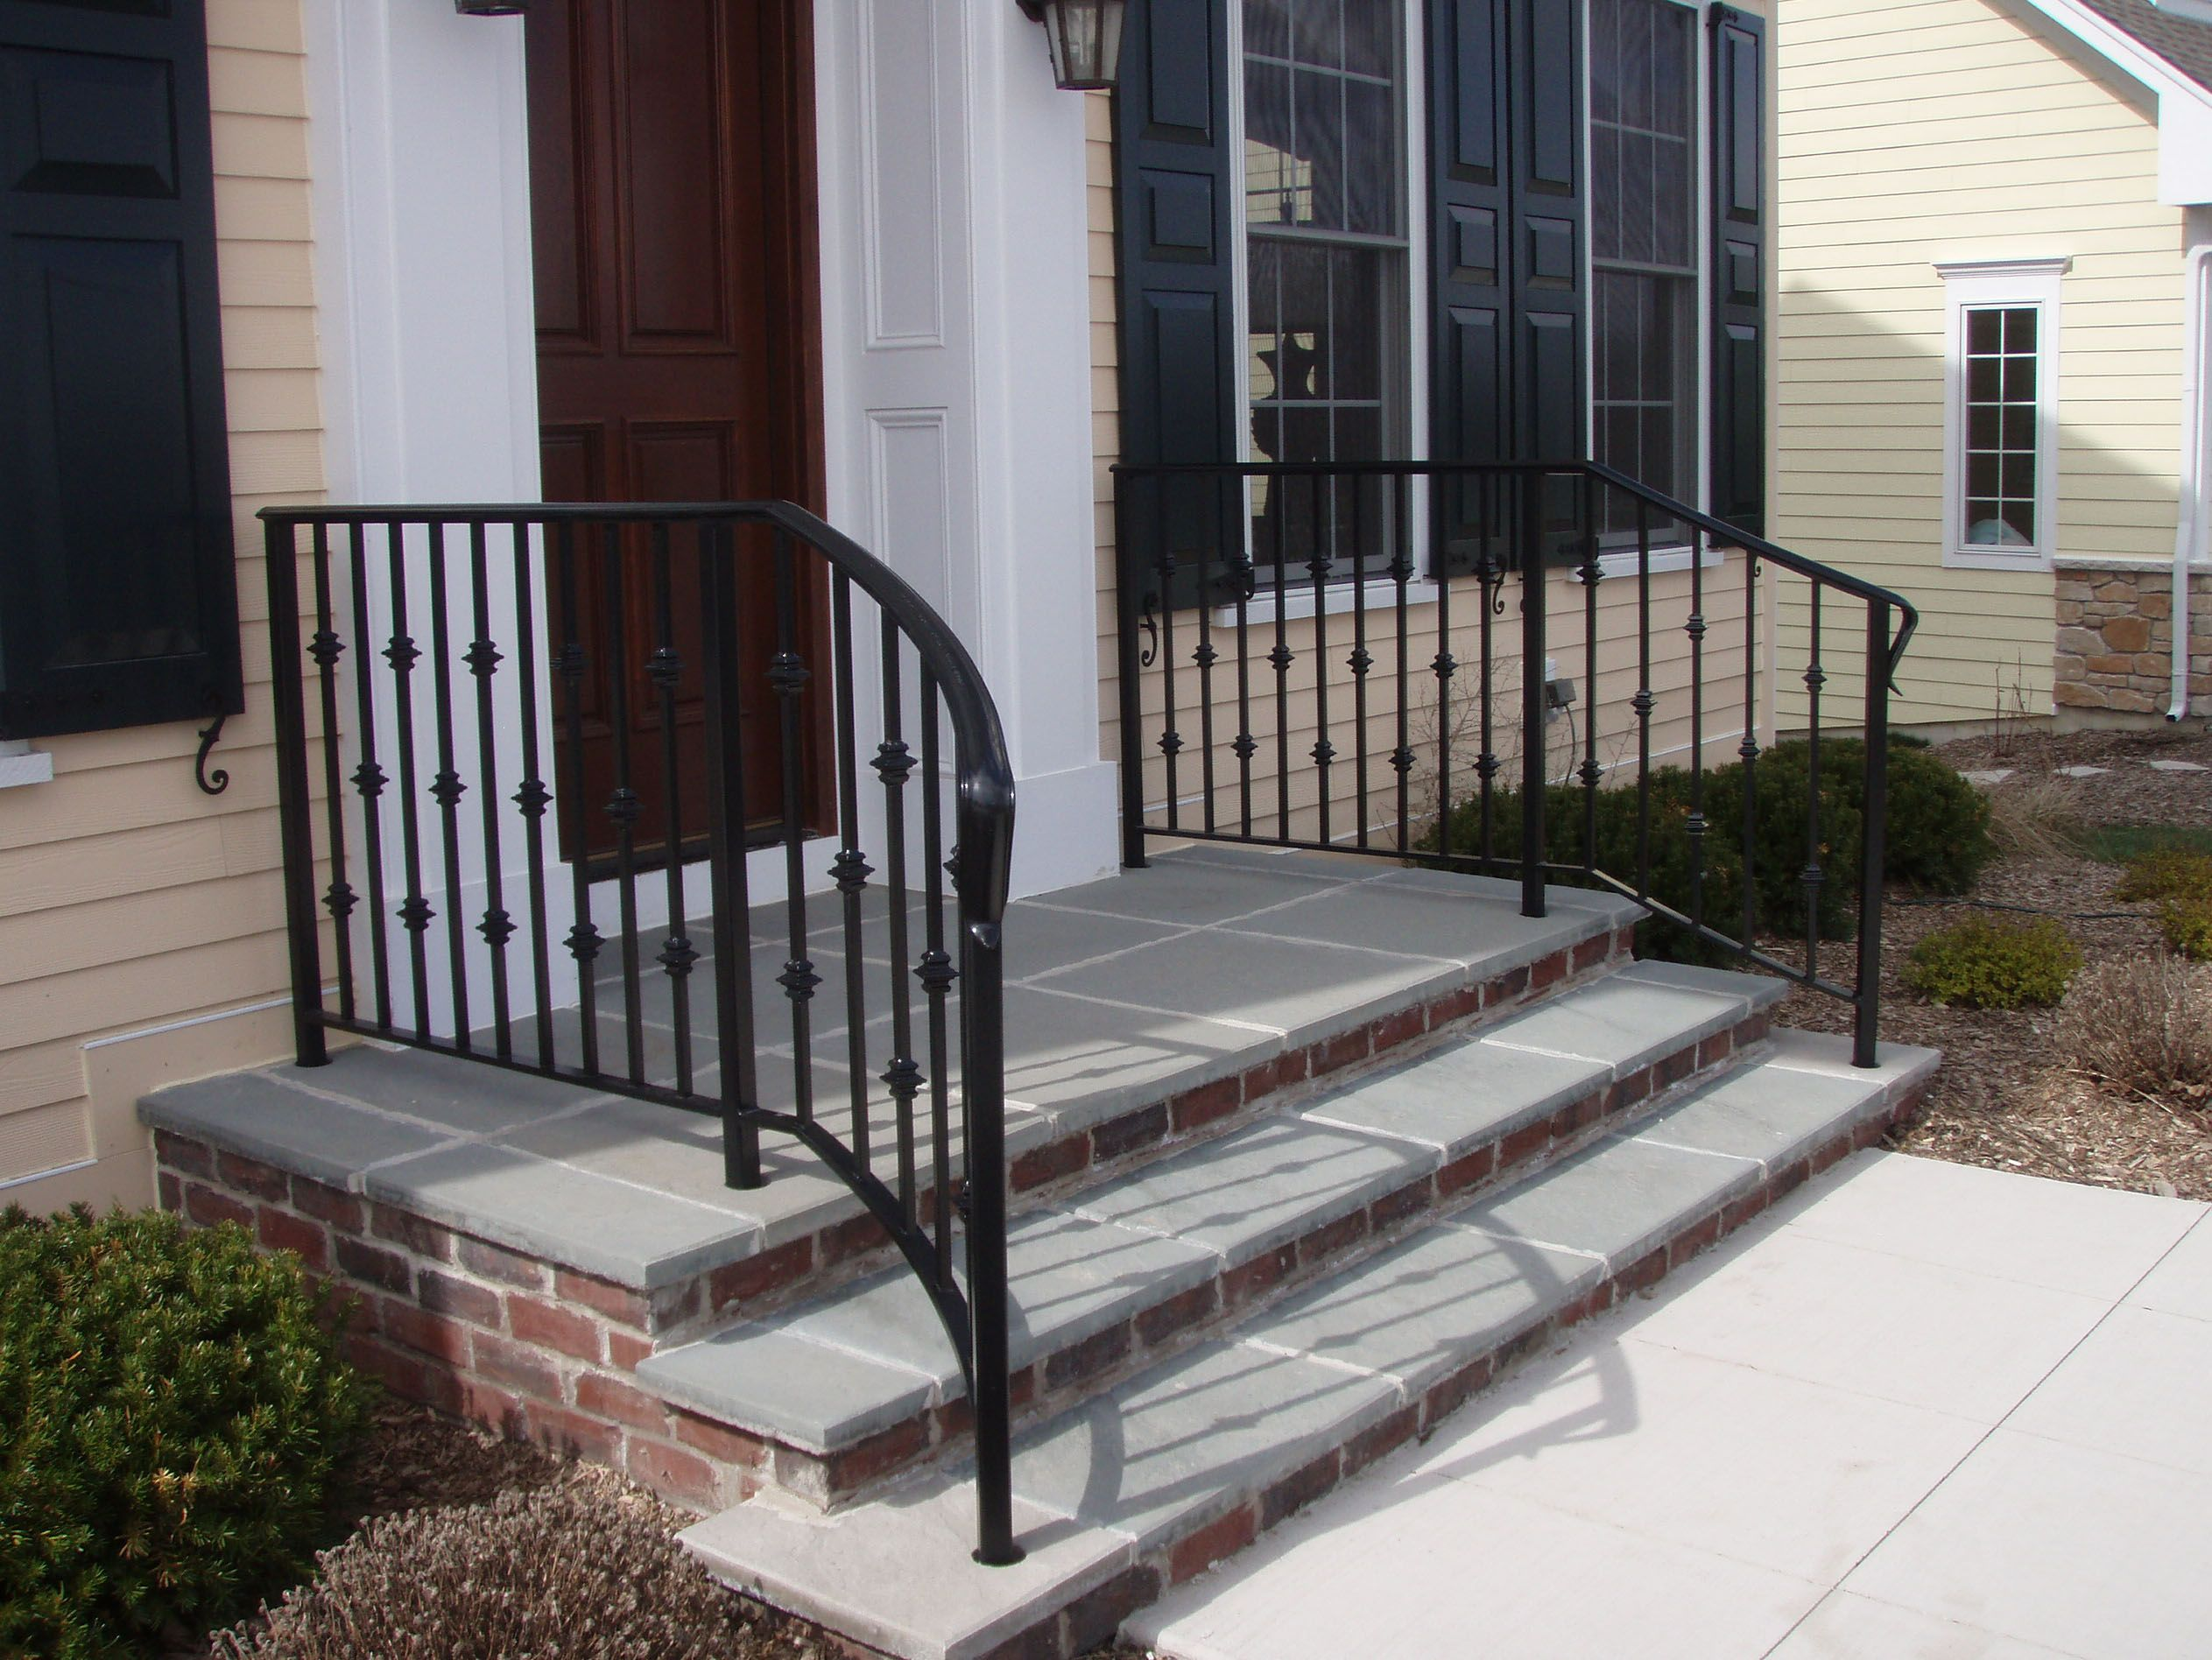 Best Wrought Iron Railings Curving Away From The Top Step I Like How This Opens Up The Steps 640 x 480